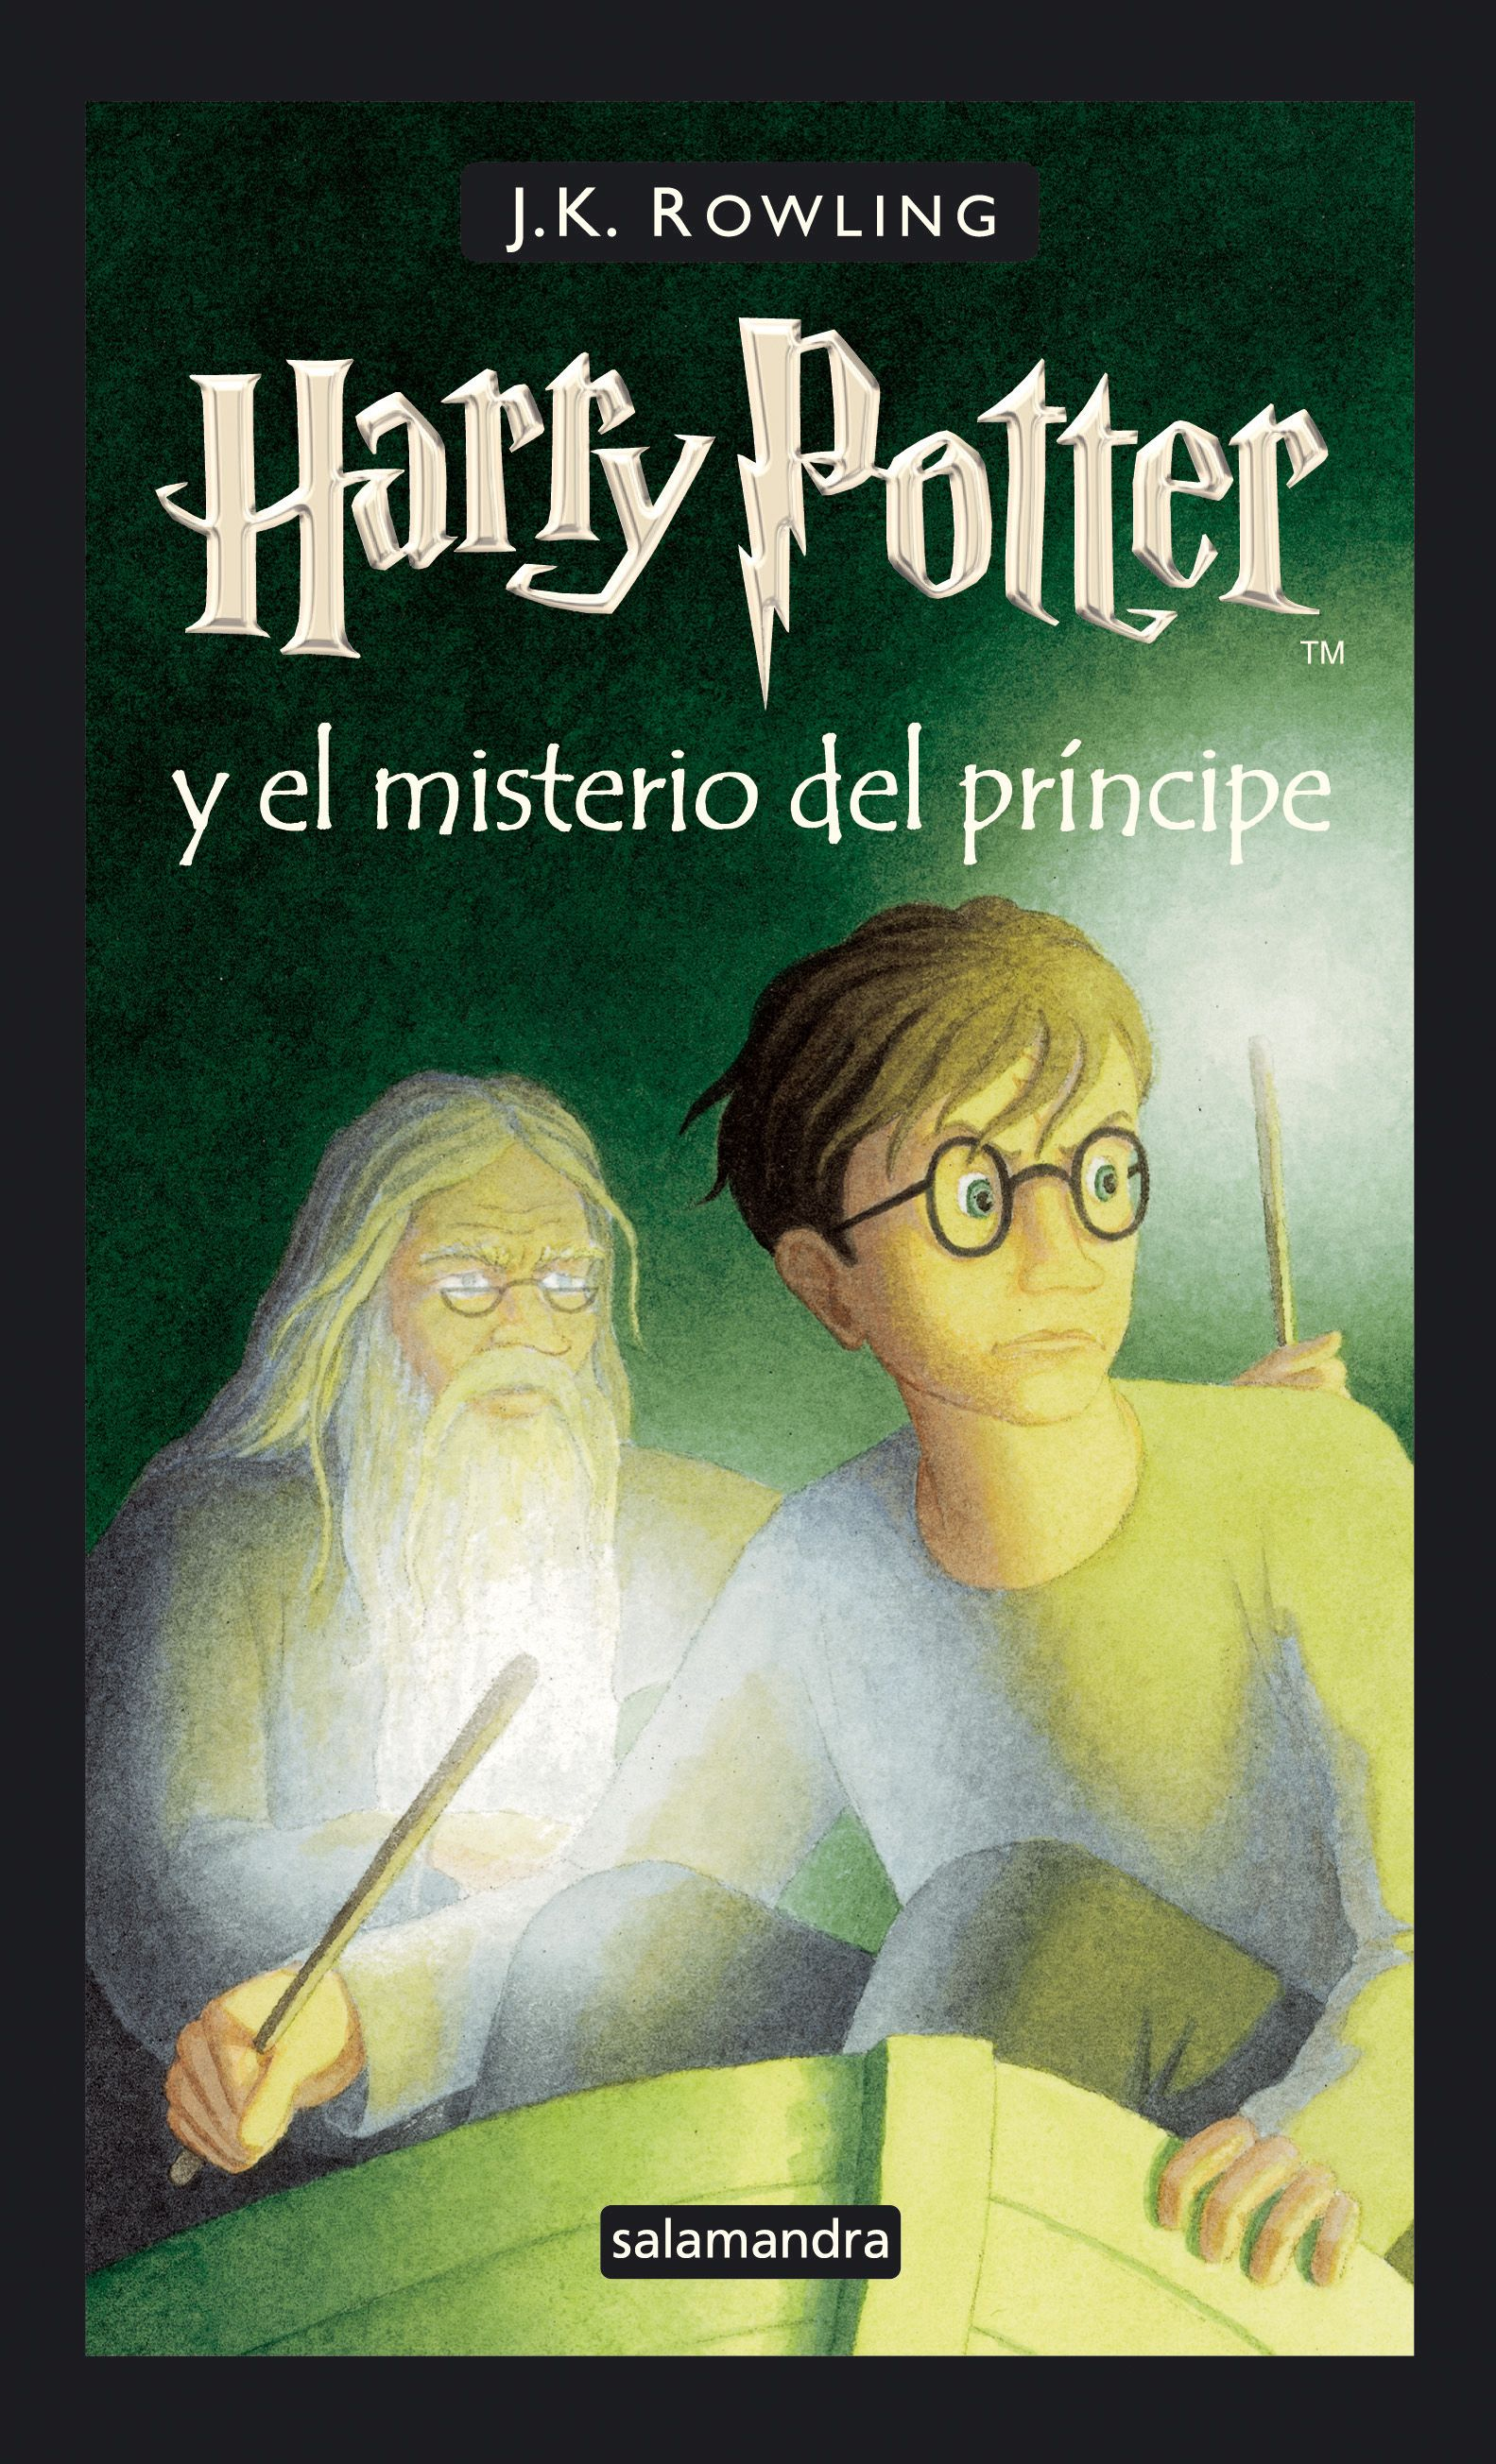 Descargar Libros De Harry Potter Descargar Los 11 Libros De Harry Potter , Completos En